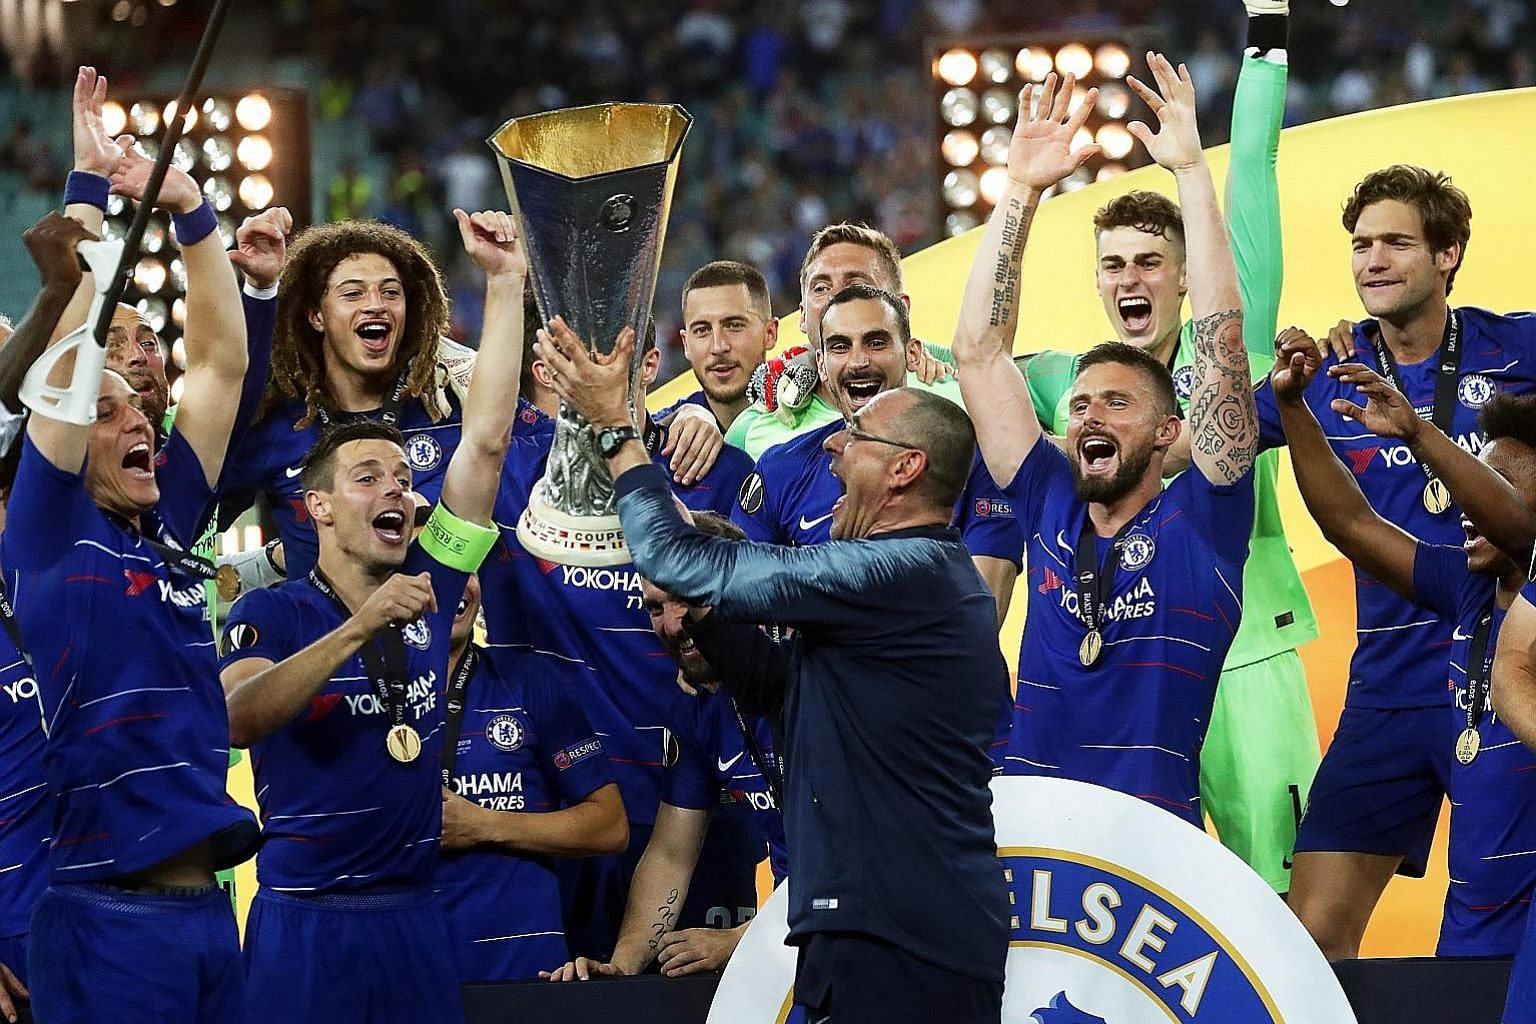 Chelsea's manager Maurizio Sarri lifts the Europa League trophy, his first major silverware as a coach, along with his jubilant team after they beat Arsenal in the final in Baku. Chelsea won 4-1 but the Italian's immediate future remains clouded by u